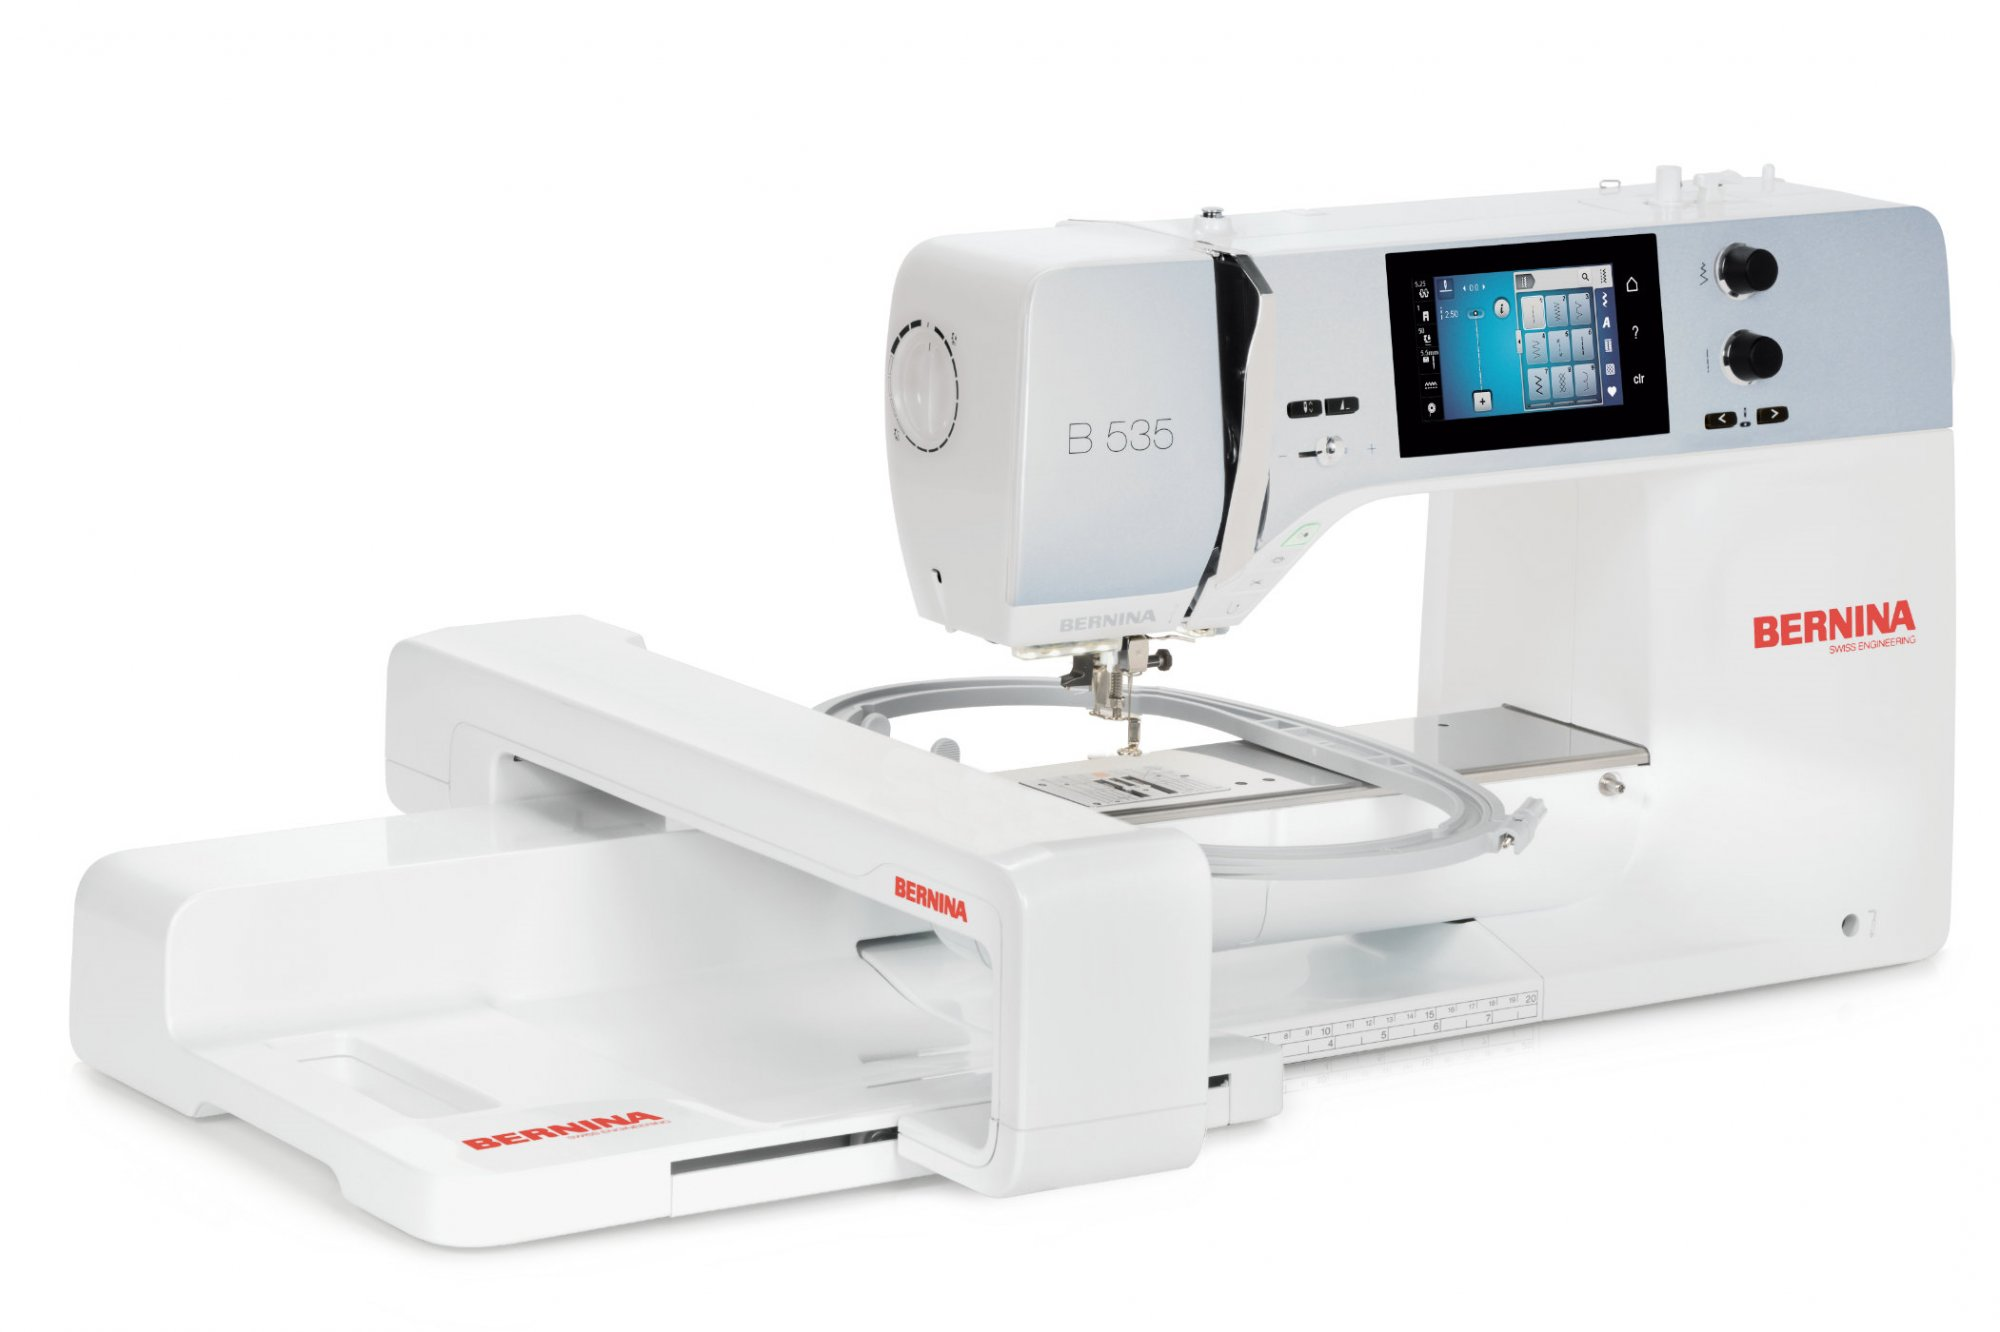 Bernina B535 Sewing & Embroidery Machine